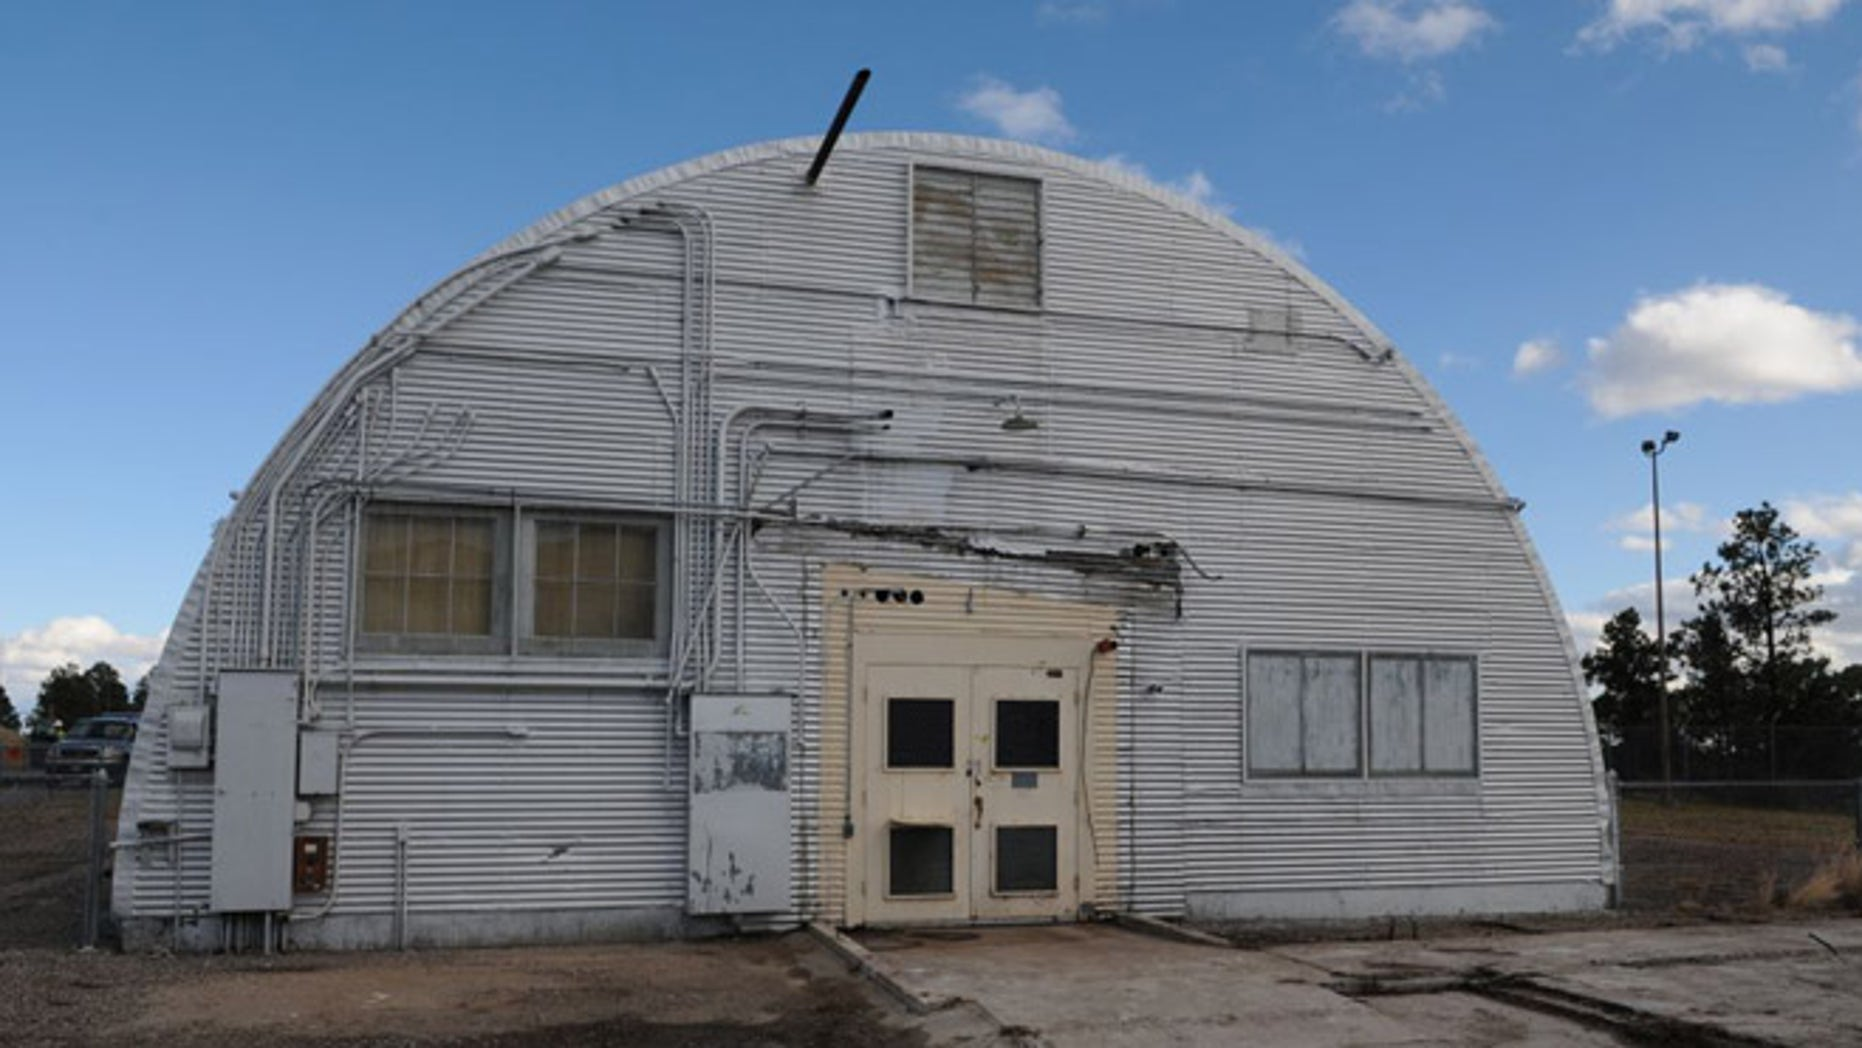 This undated image provided by the Los Alamos National Laboratory shows the Quonset hut where the bomb that was dropped on Nagasaki was assembled.